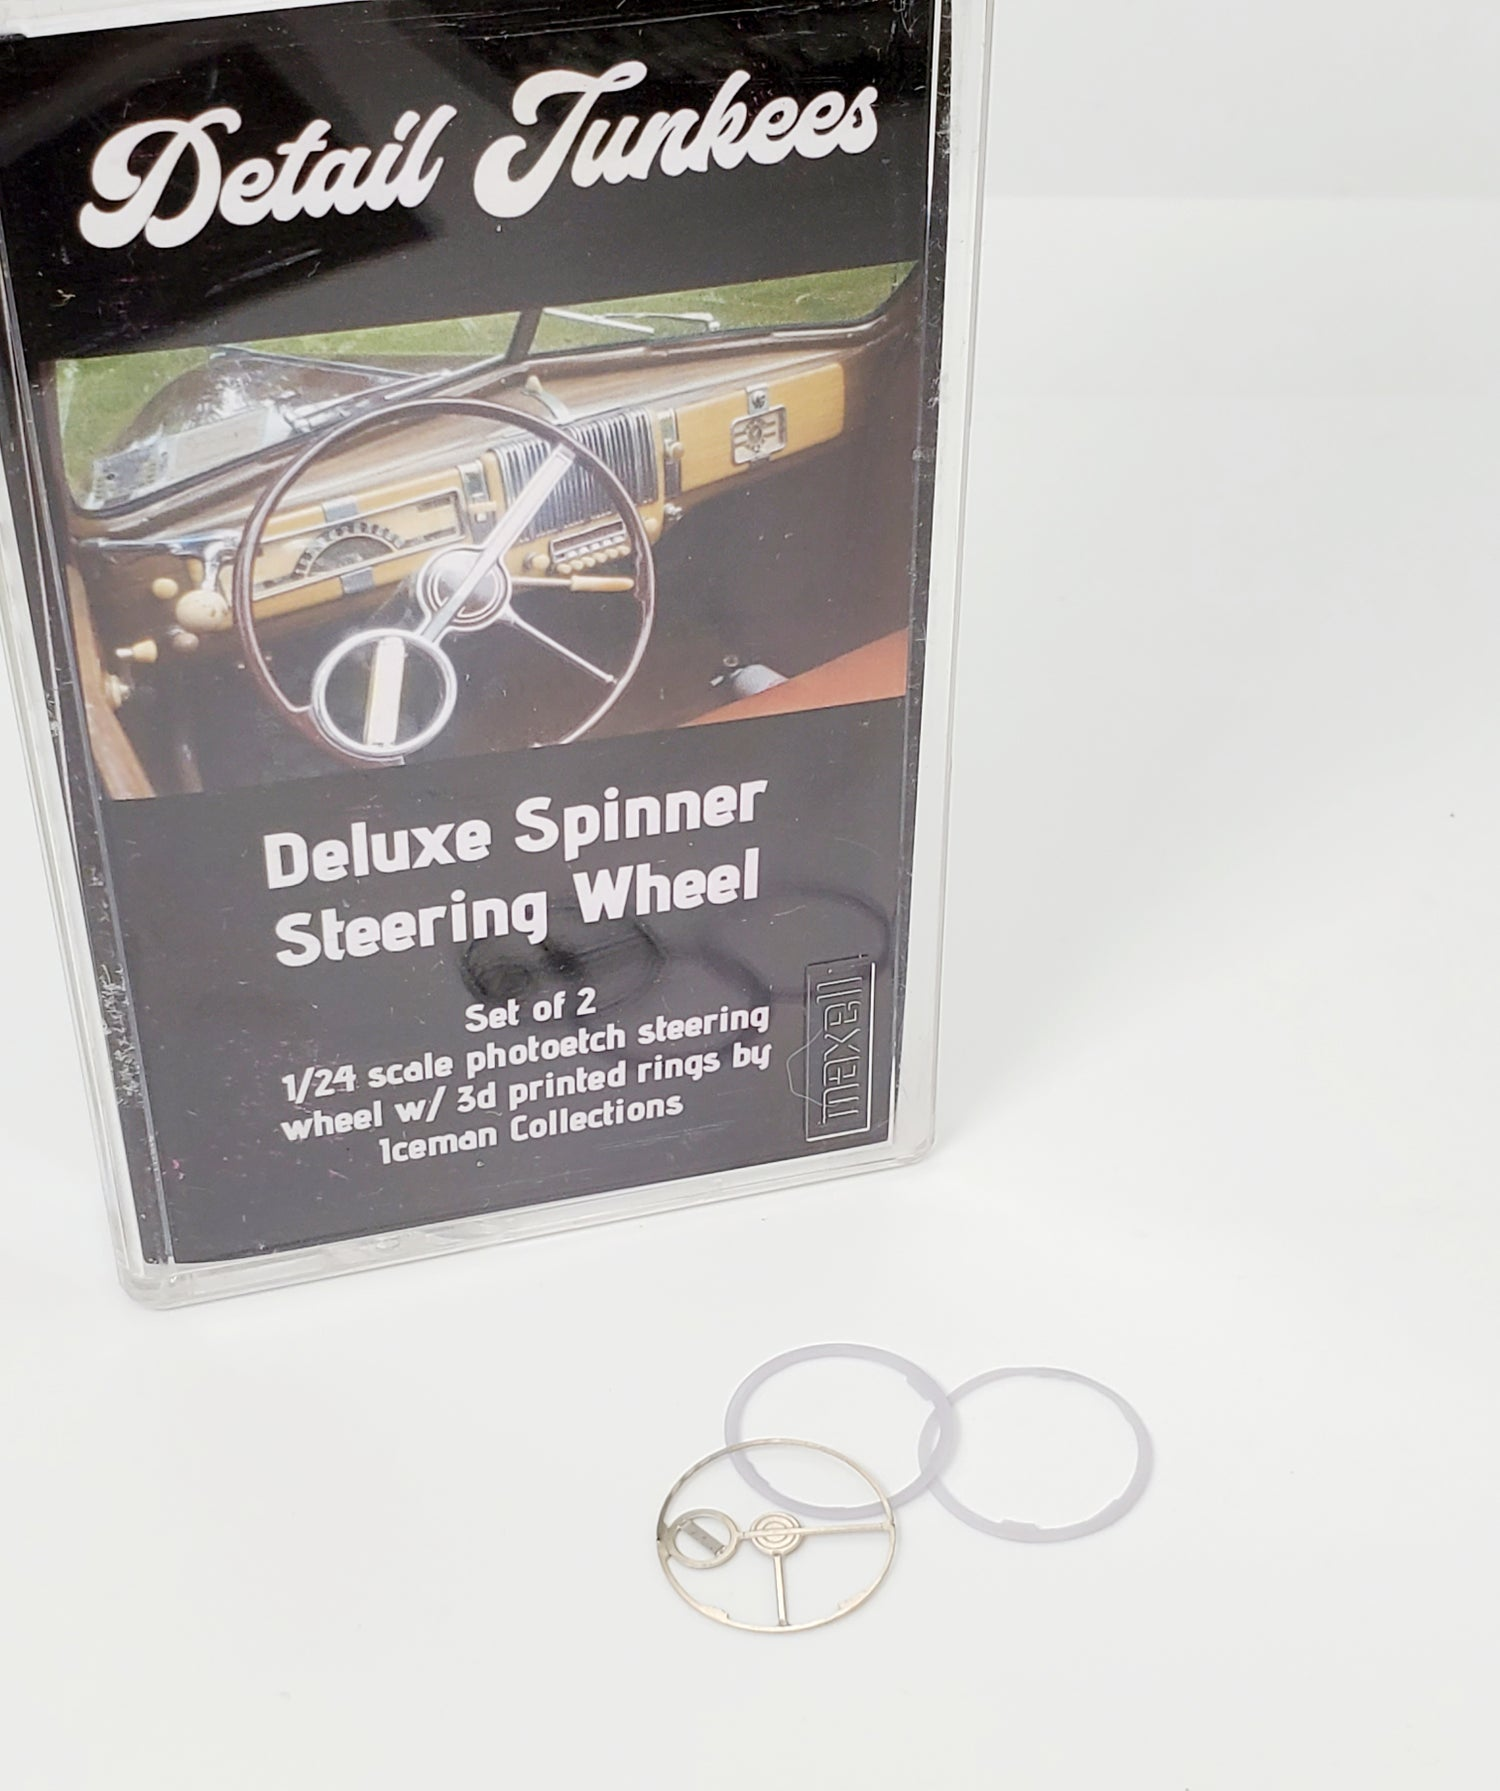 Image of Chevy Deluxe Spinner Steering Wheel Set.